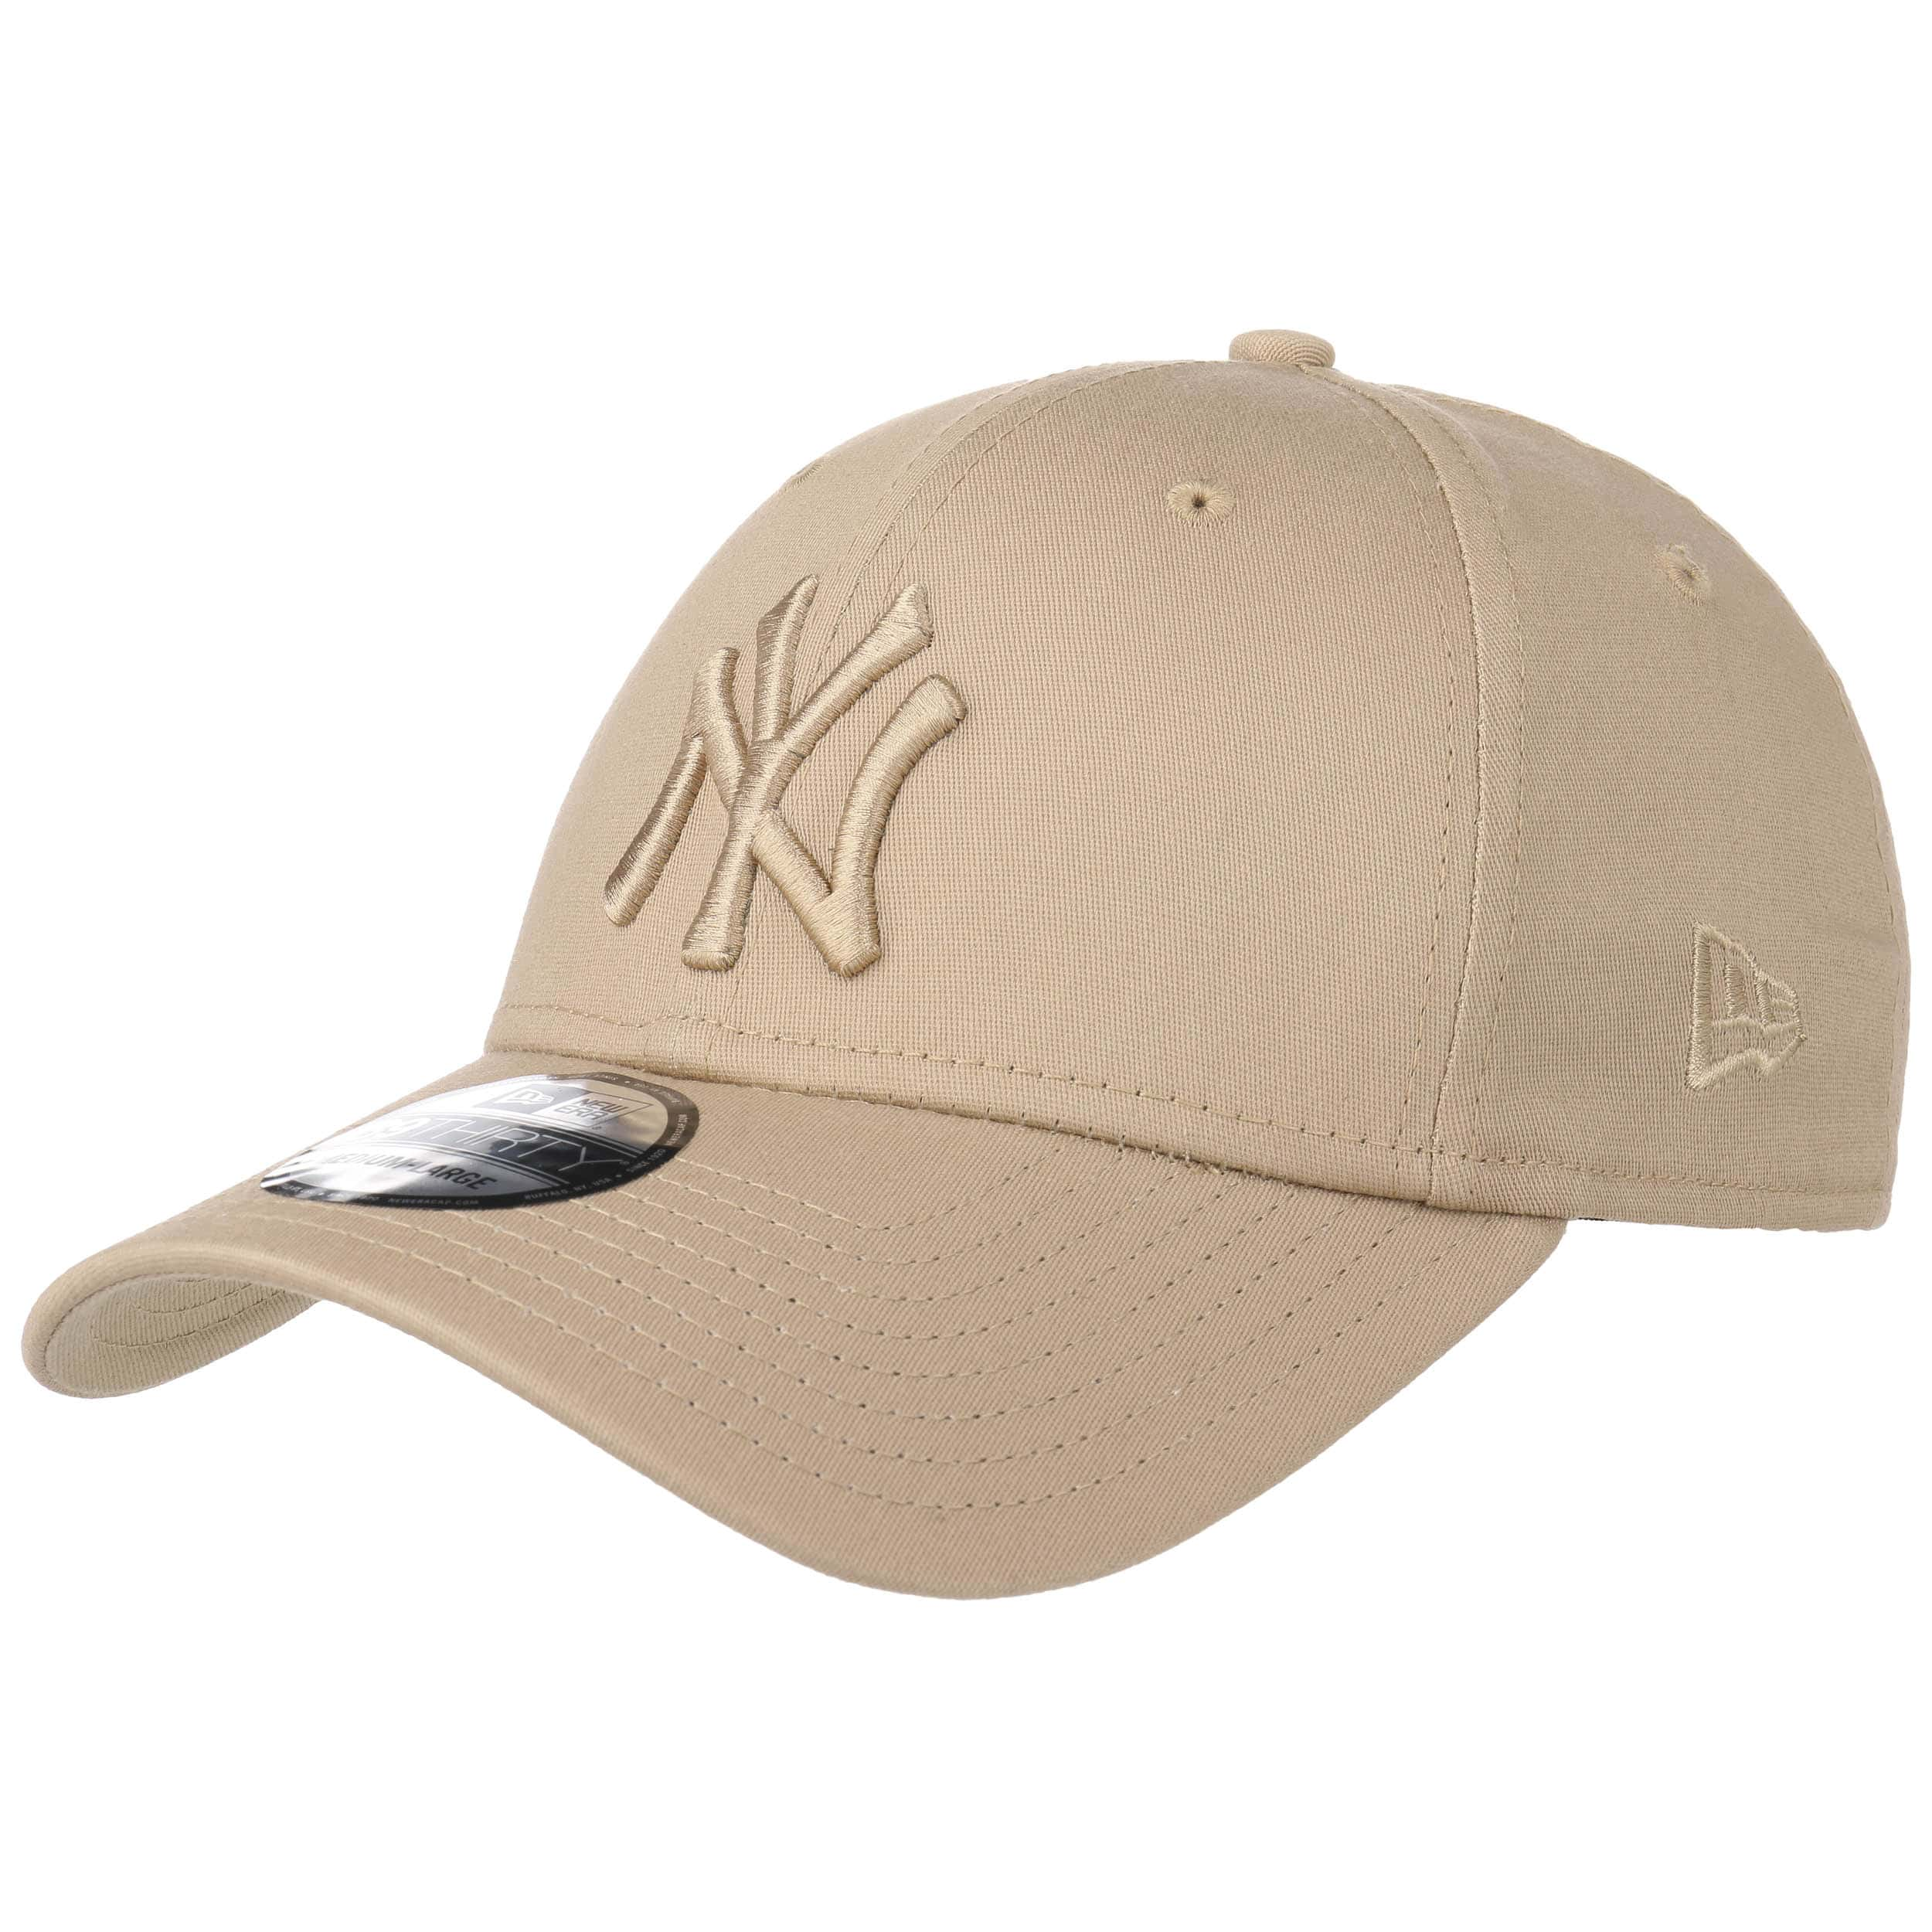 ... 39Thirty League NY Cap by New Era - khaki 6 ... 2e5d8bac3ad